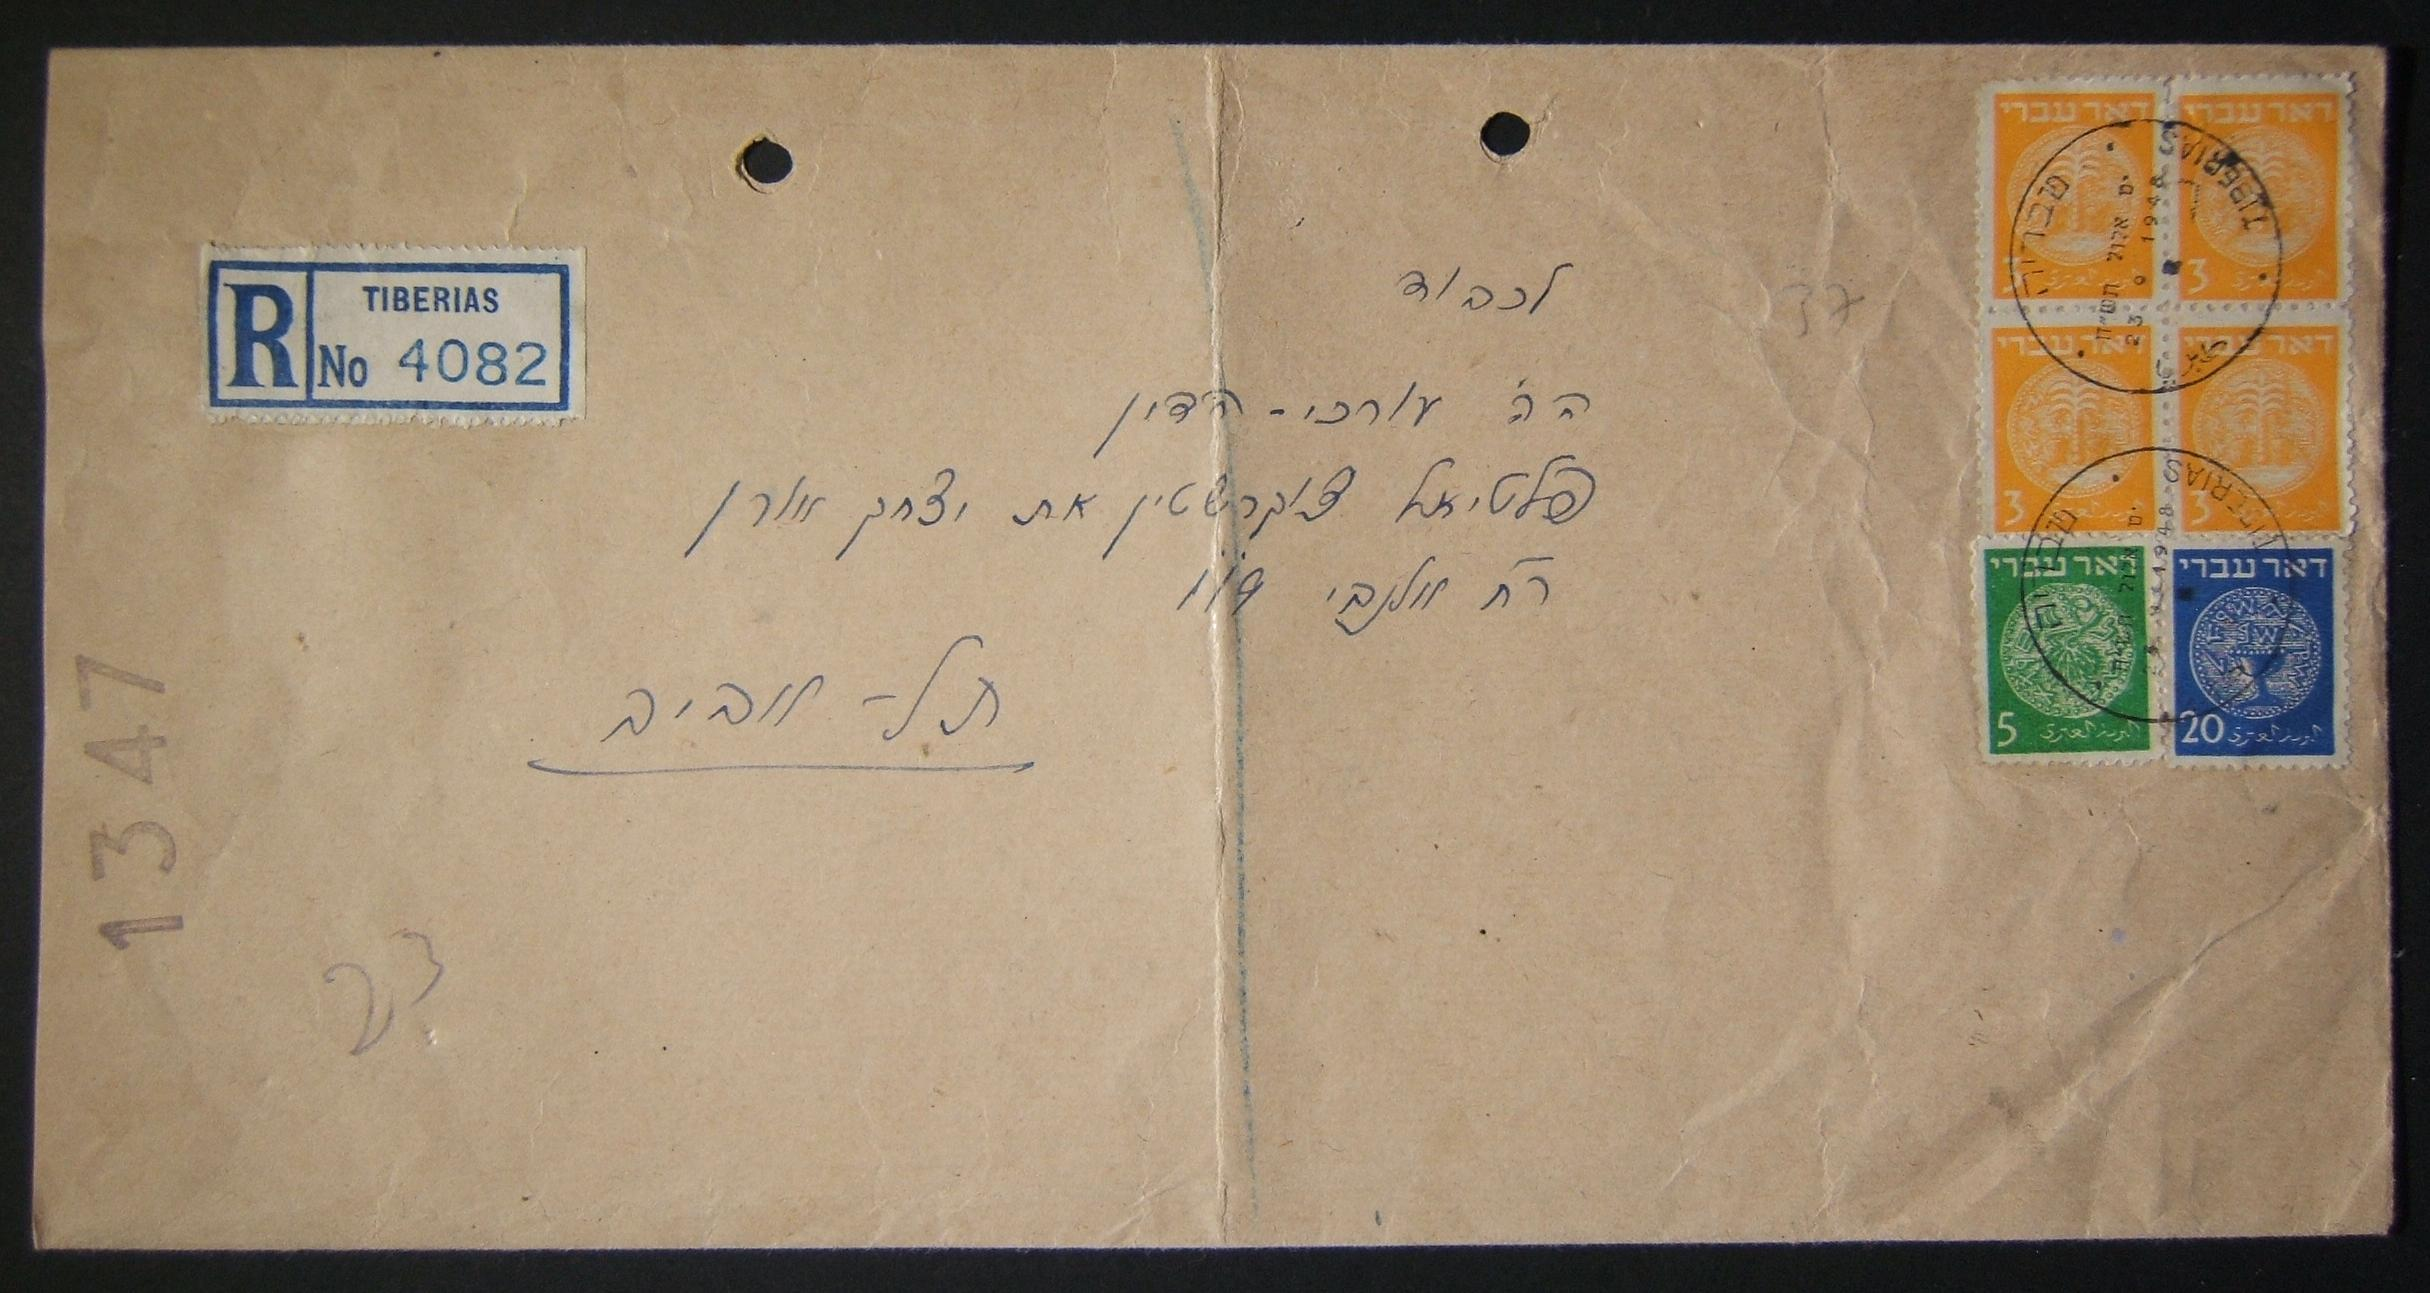 Doar Ivri PO's, rates & routes: 23-9-1948 3 color registered commercial cover ex TIBERIAS to TLV franked 37m at the DO-1 period rate (10m letter + 15m registration + 12m for 2x 10g